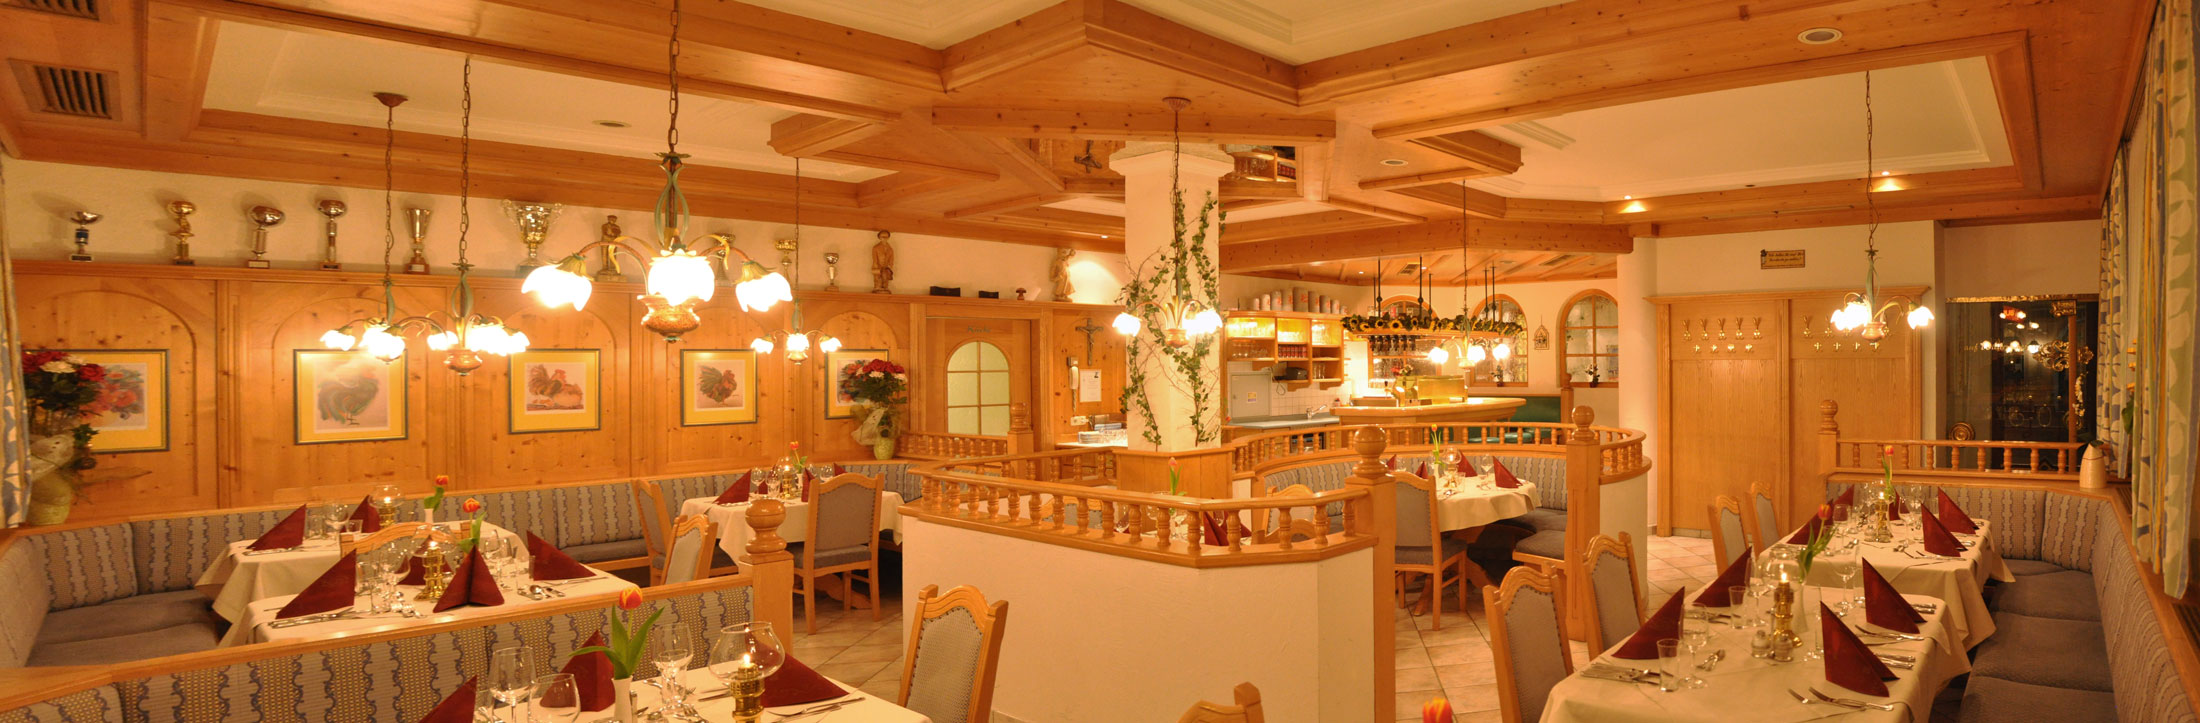 One of the comfortable restaurants in the Hotel Schattauer